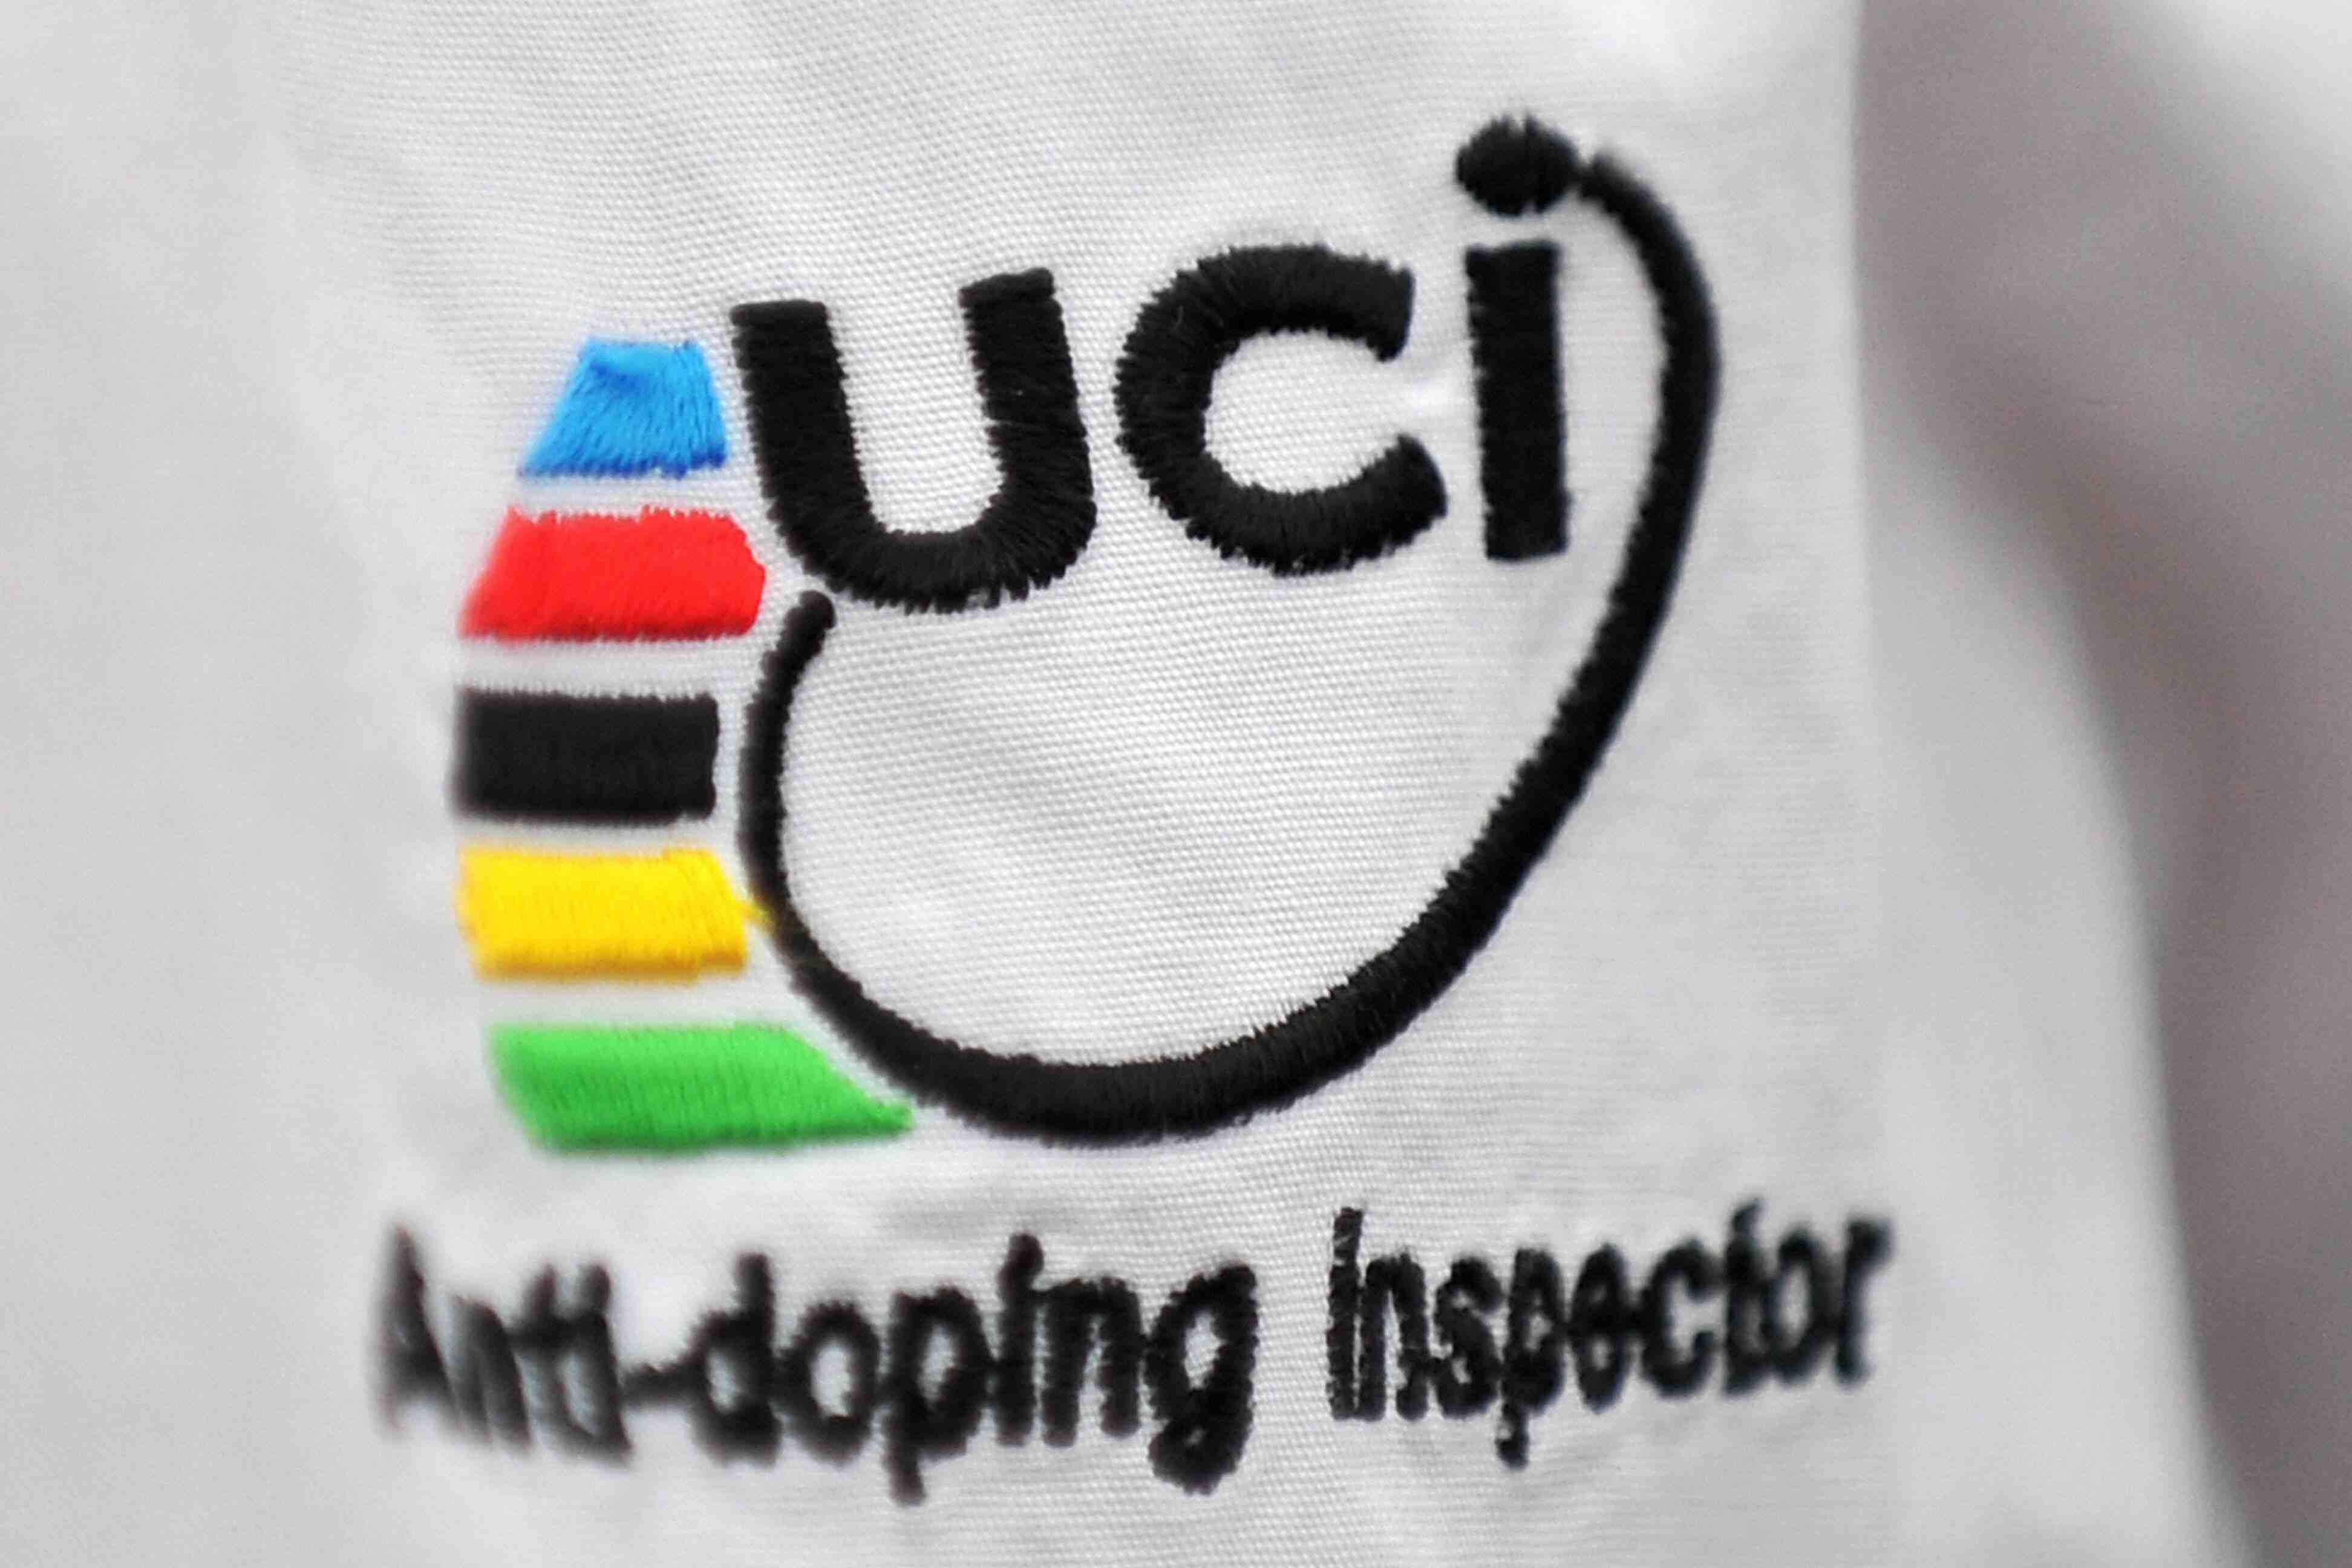 A close-up photo of a UCI anti-doping inspector's shirt during the 2009 Tour.